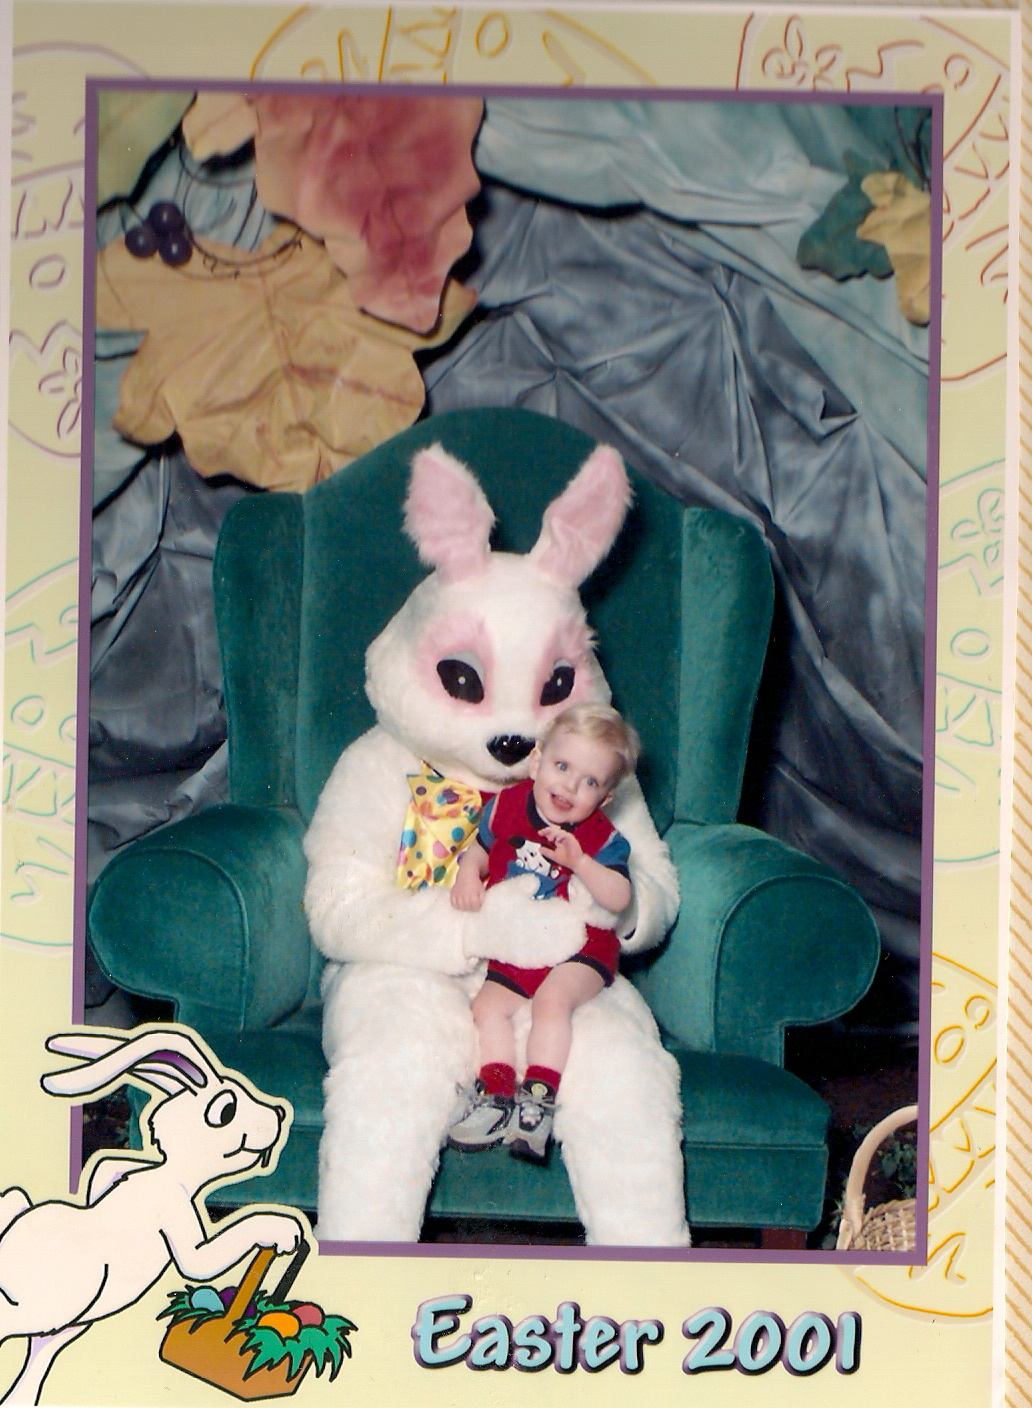 Scary Easter Bunny Photos The scary easter bunny: taking